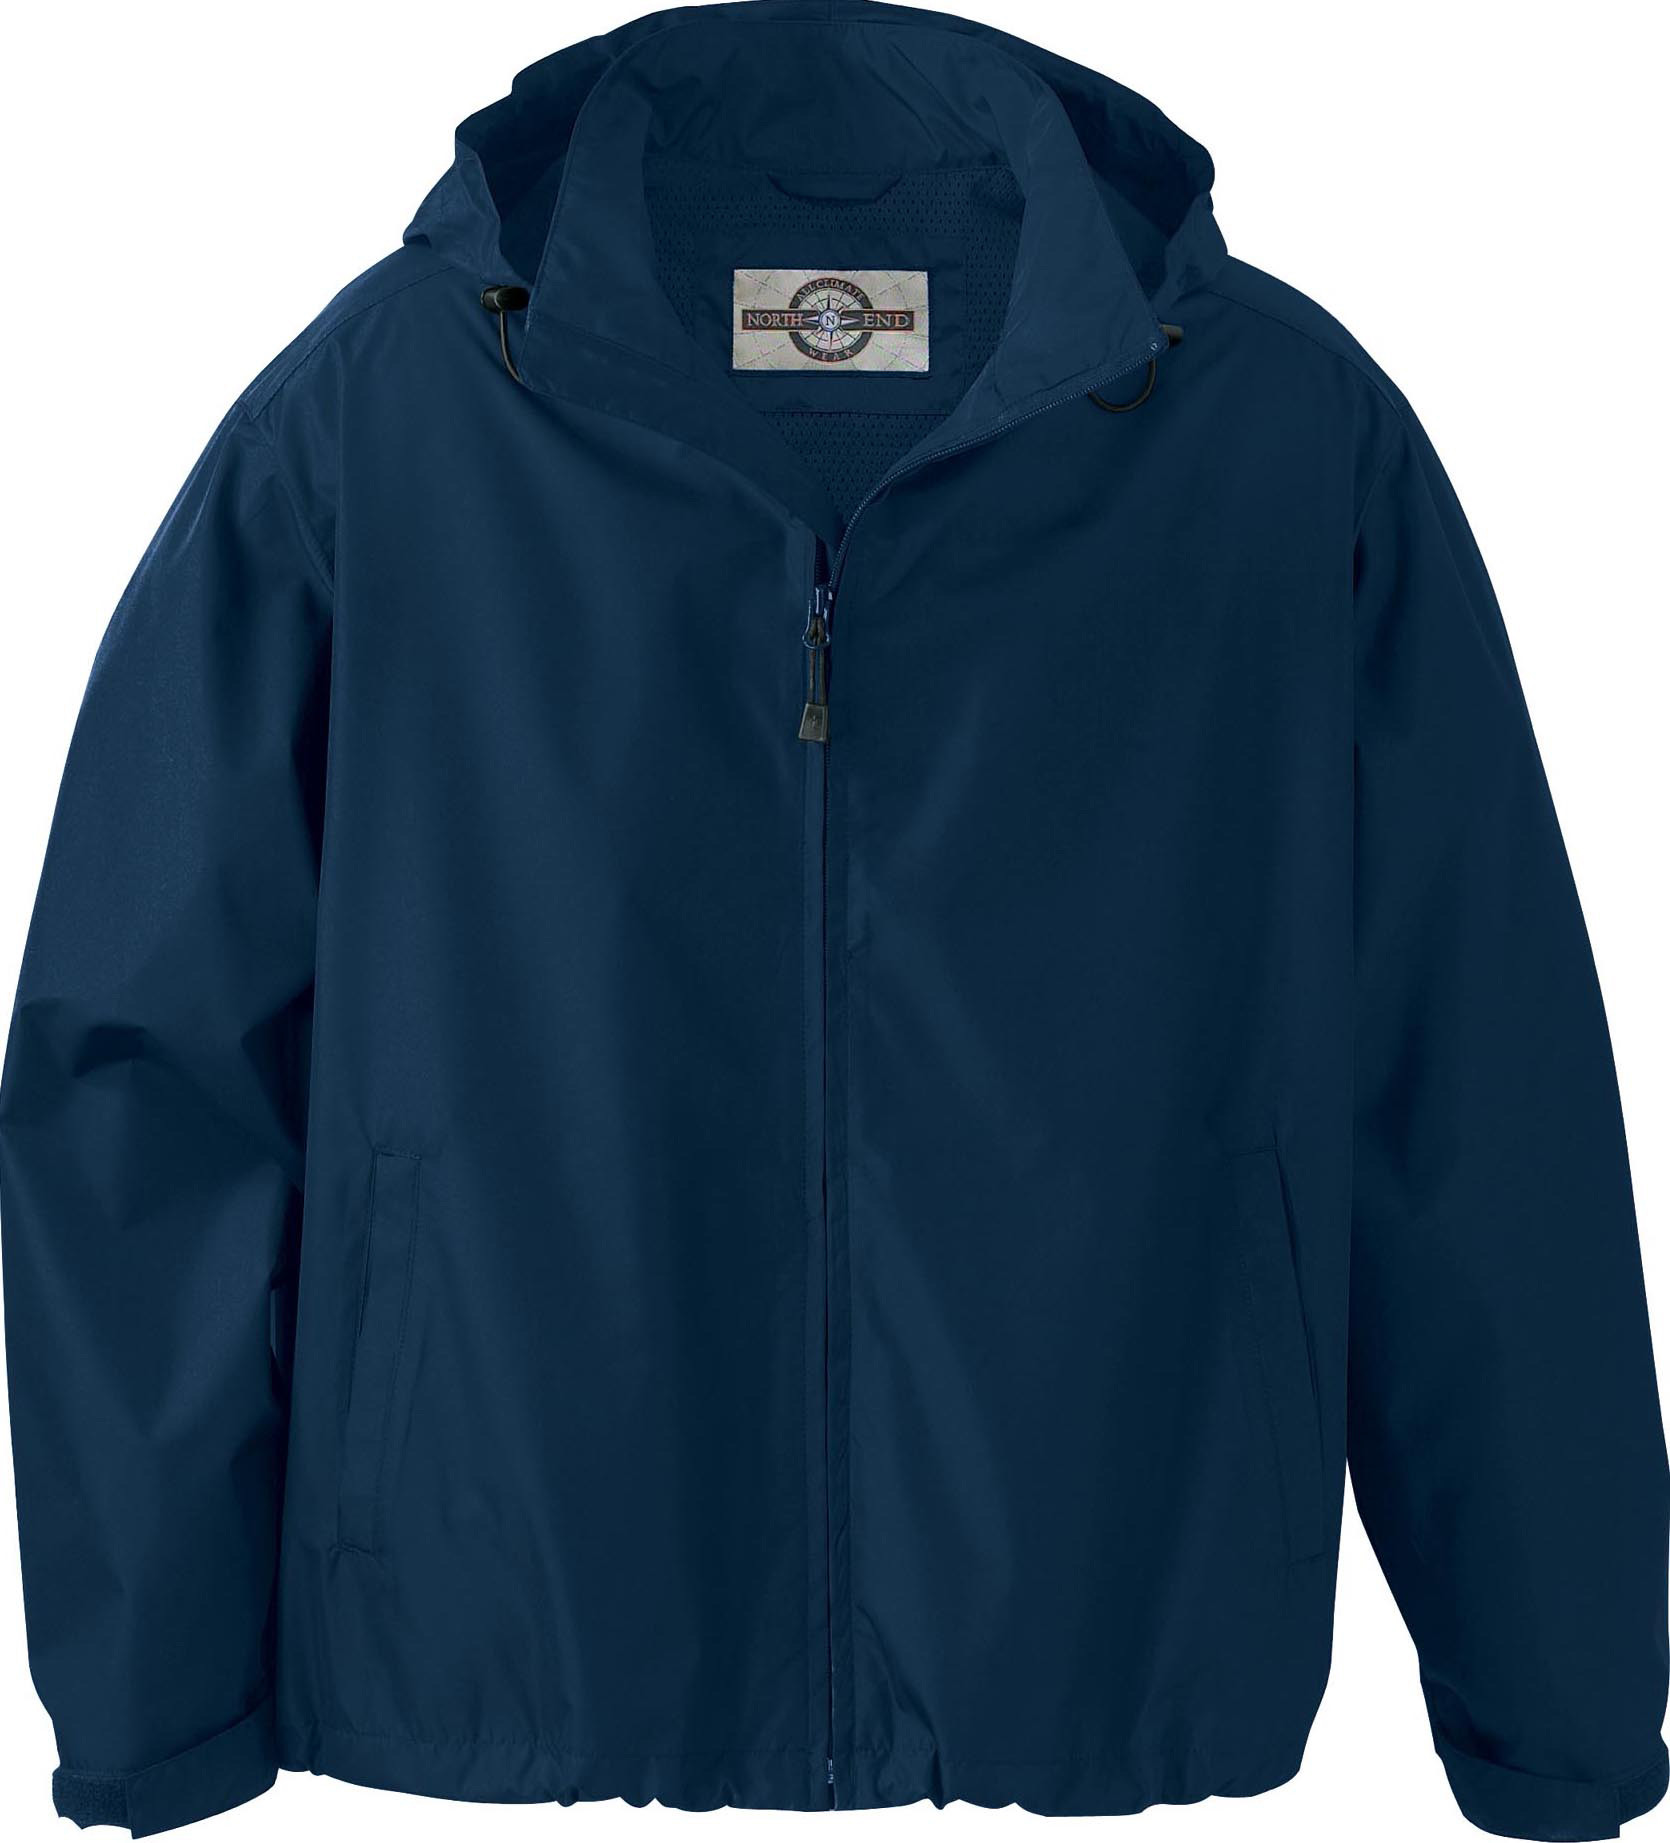 Ash City Lightweight 88083 - Men's Techno Lite Jacket